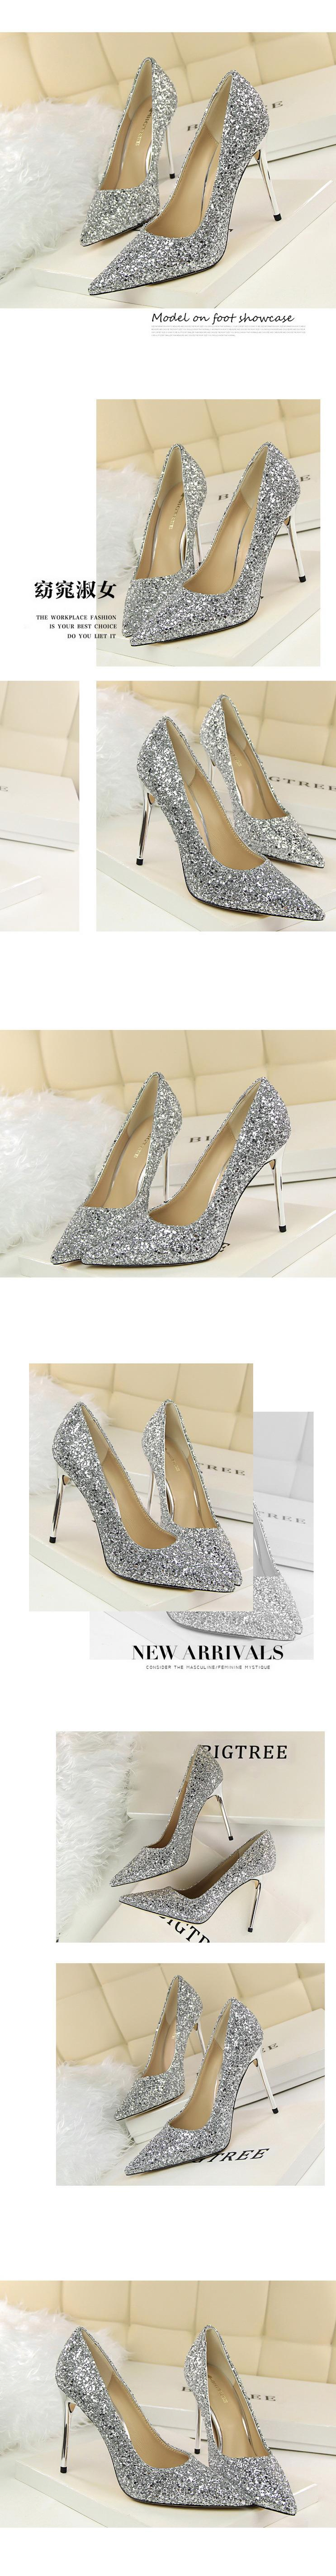 Brand heels wedding shoes for bride bridesmaid party prom shoes red only yourself know whether the wedding shoes wedge fits or not wedding shoes white on dhgate is of exquisite craft and fantastic designs there will be solutioingenieria Gallery